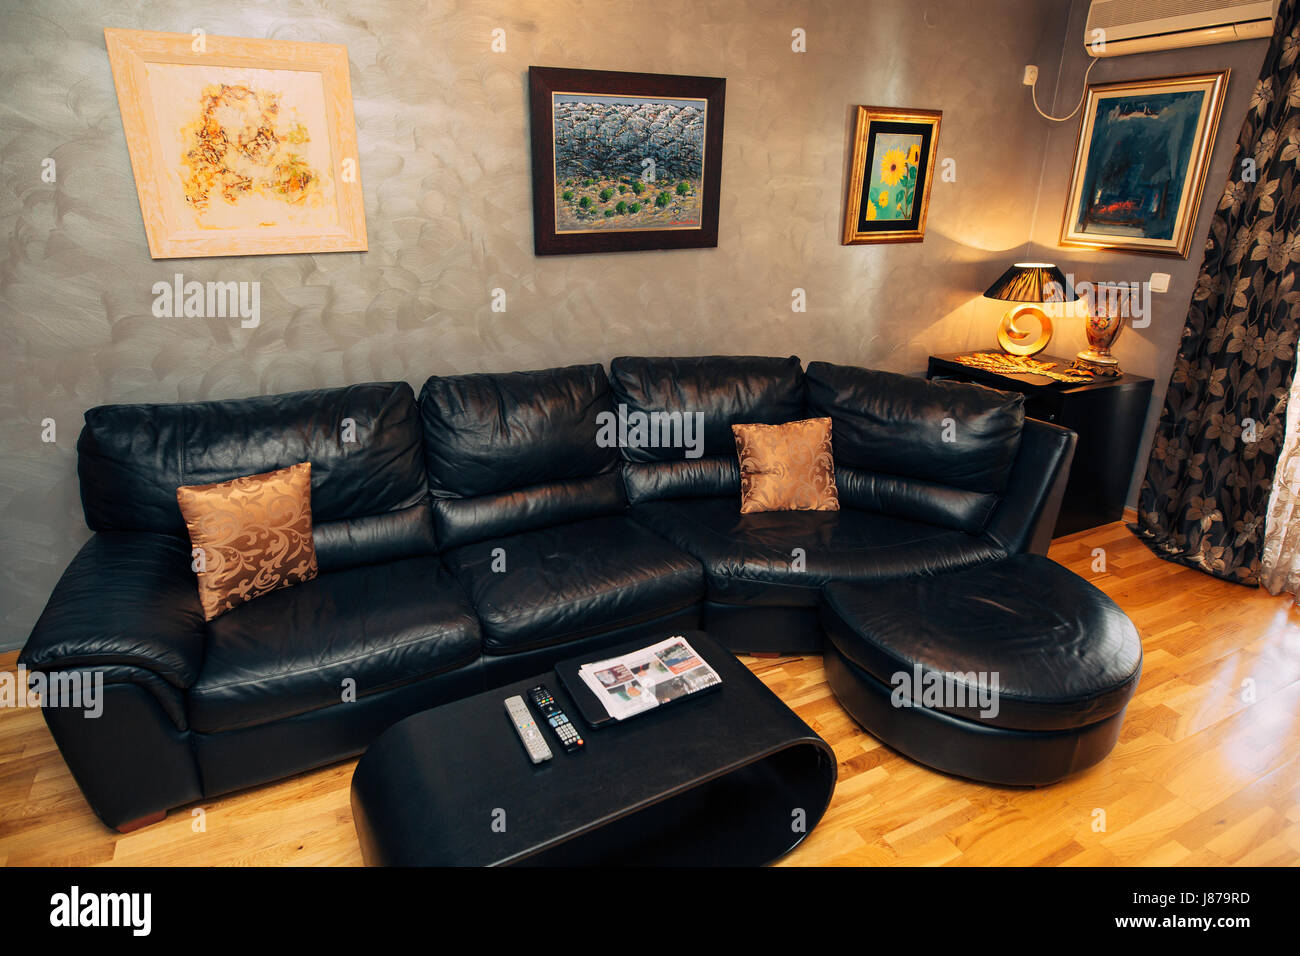 Astonishing Black Leather Sofa In The Apartment Interior Living Room Beatyapartments Chair Design Images Beatyapartmentscom